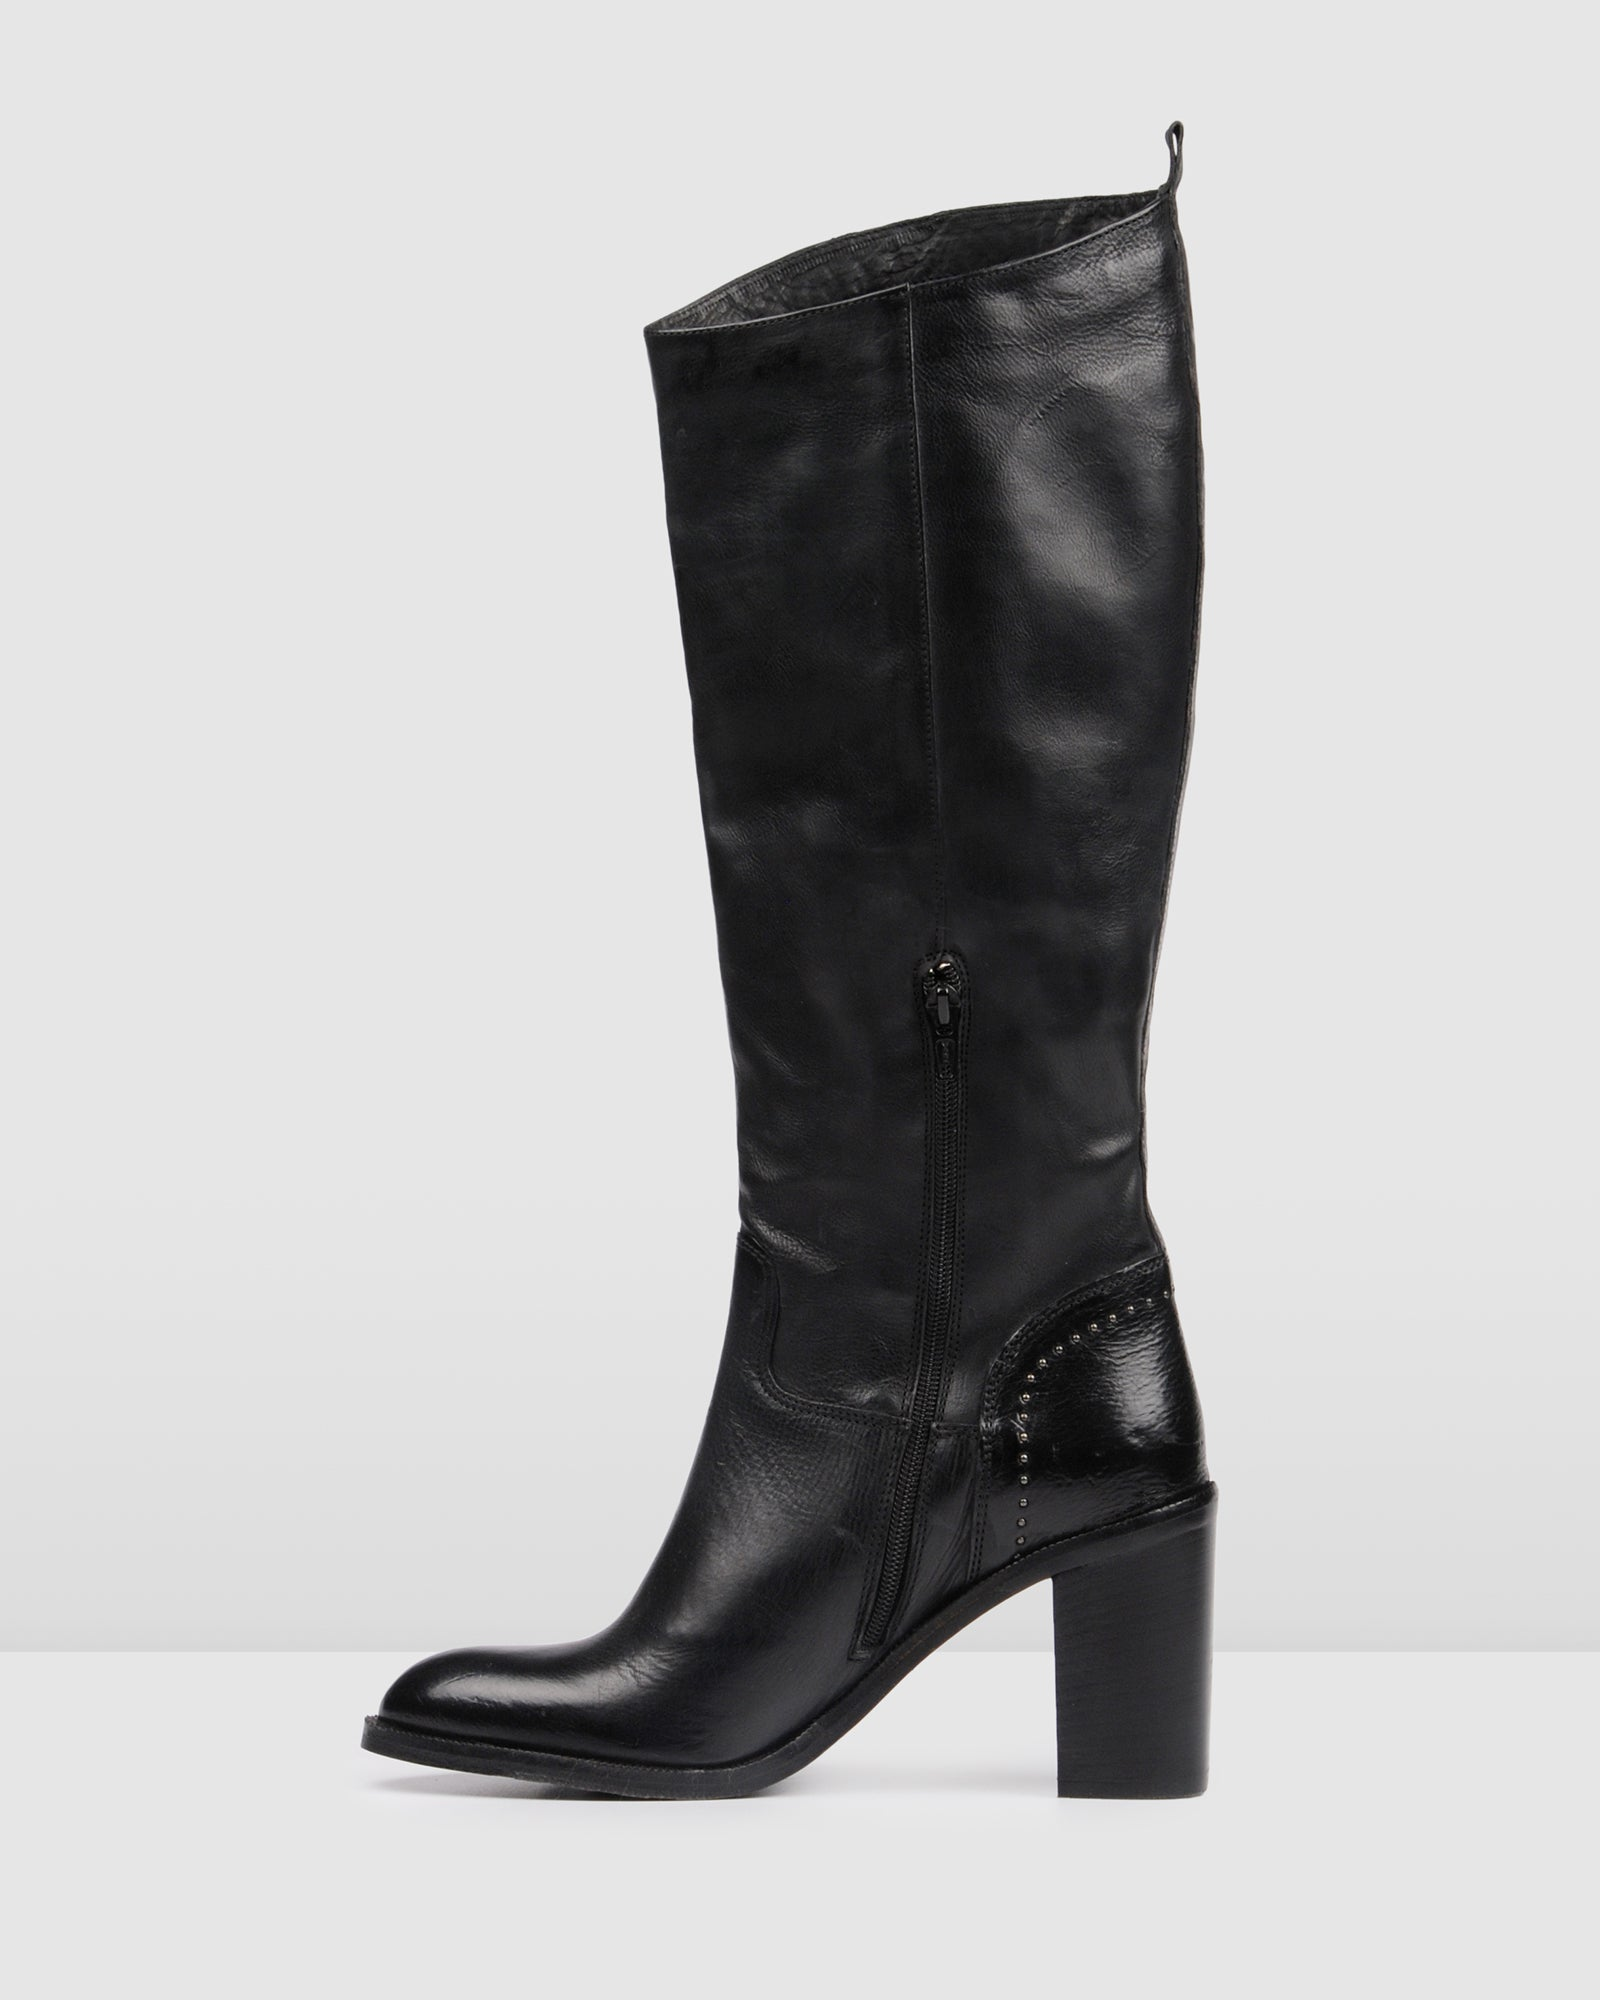 HELENA HIGH KNEE BOOTS BLACK LEATHER